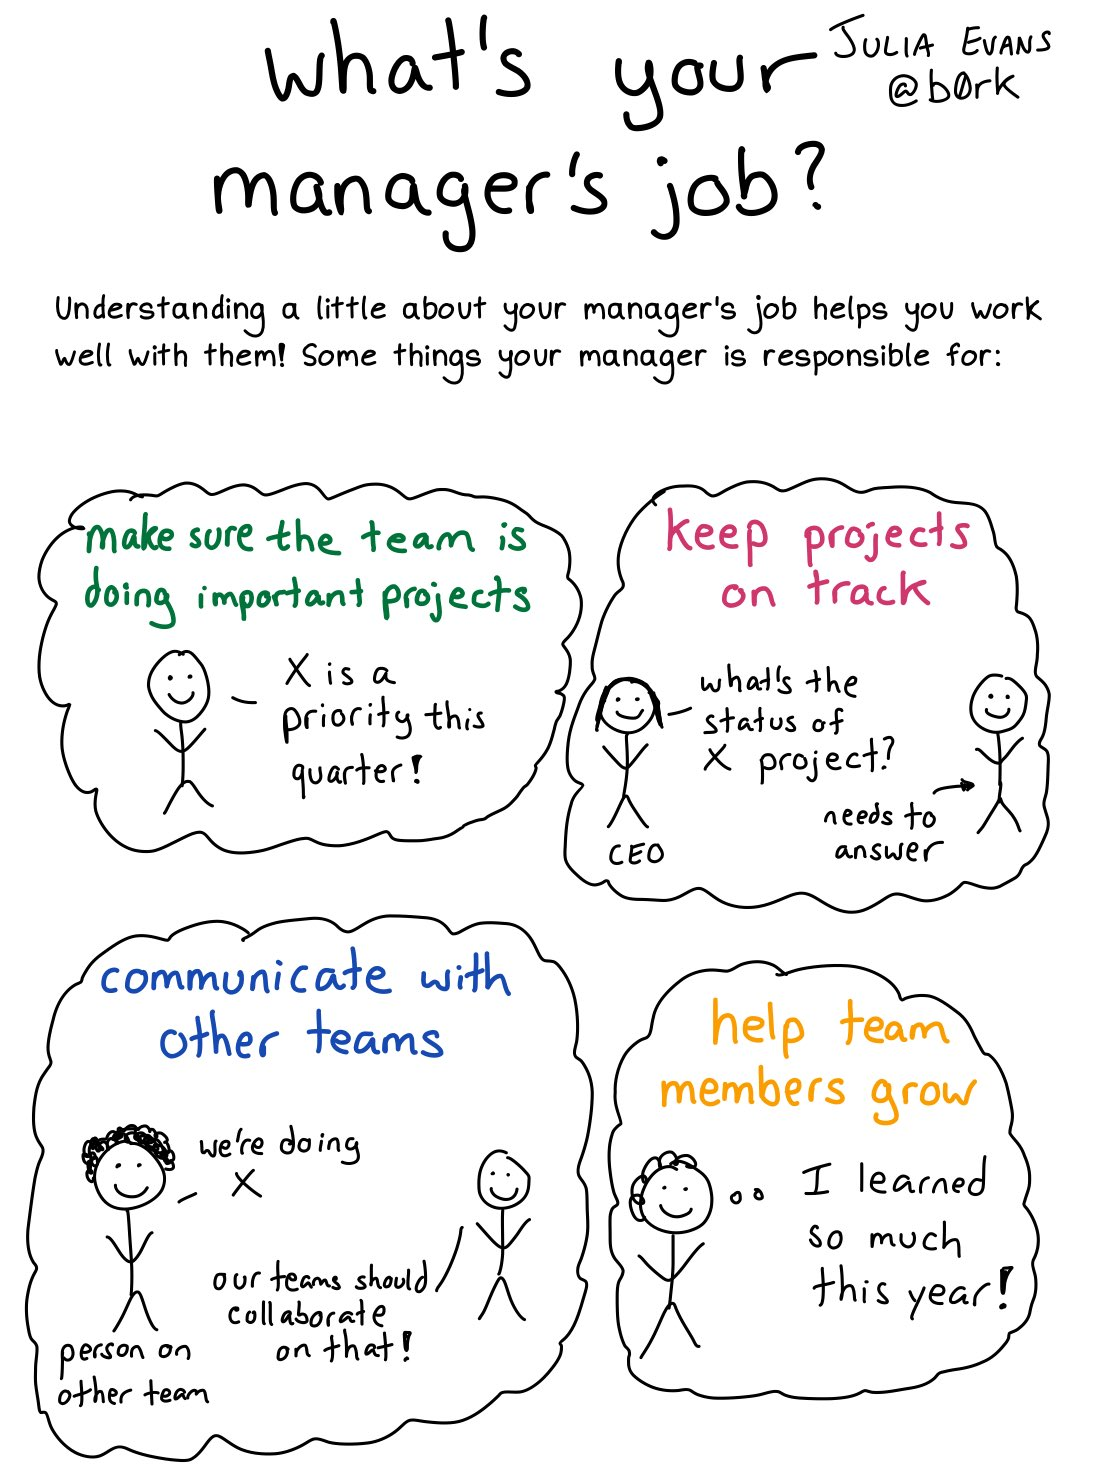 what's your manager's job? https://t.co/lpew2KgJxc